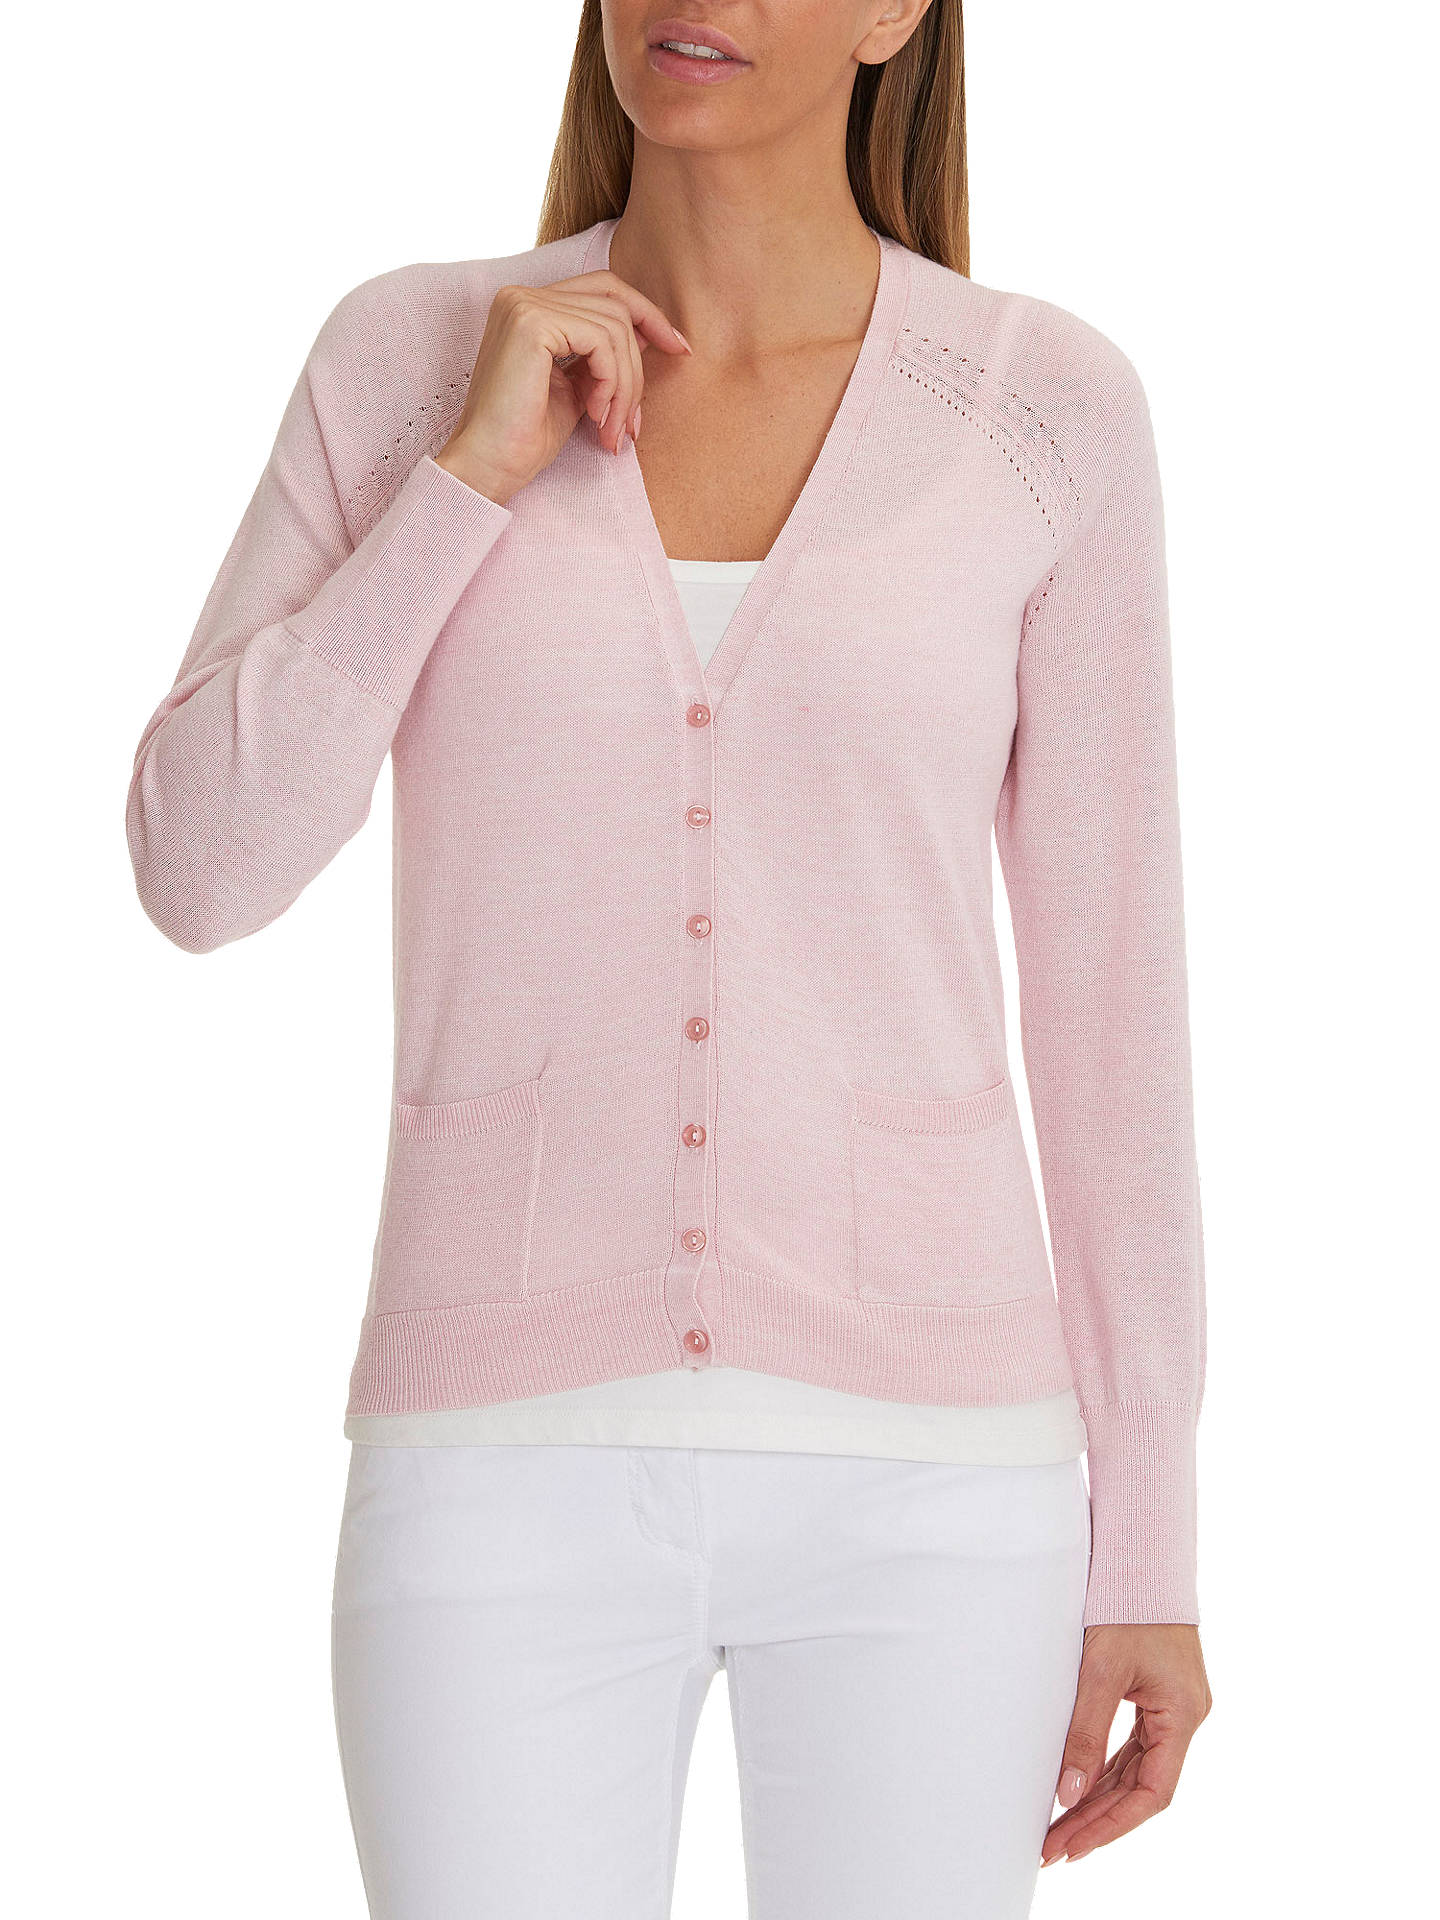 BuyBetty Barclay Fine Knit Cardigan, Wild Rose, 8 Online at johnlewis.com  ... 9238b04735